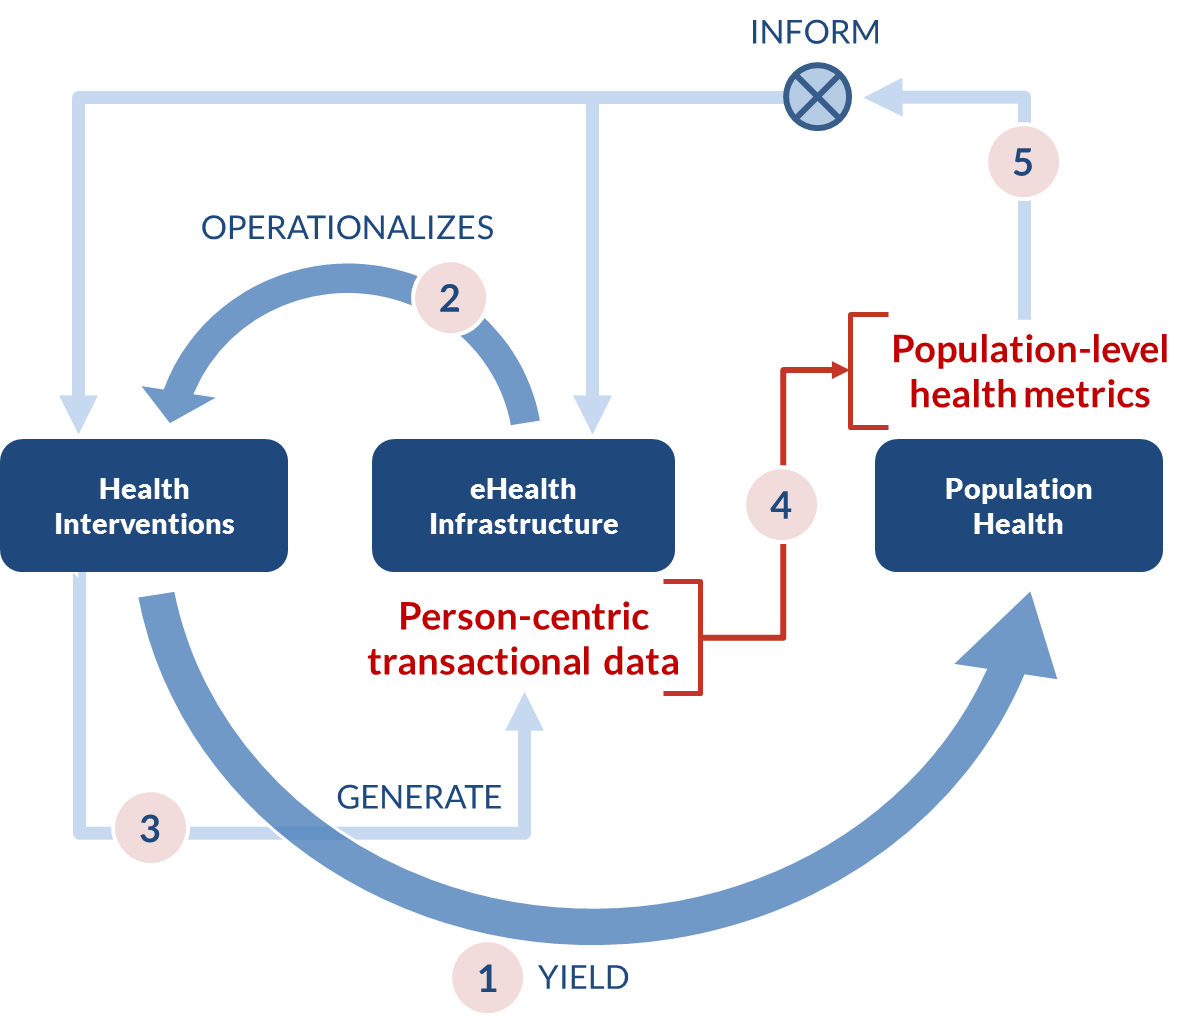 Figure 1. How eHealth affects health outcomes